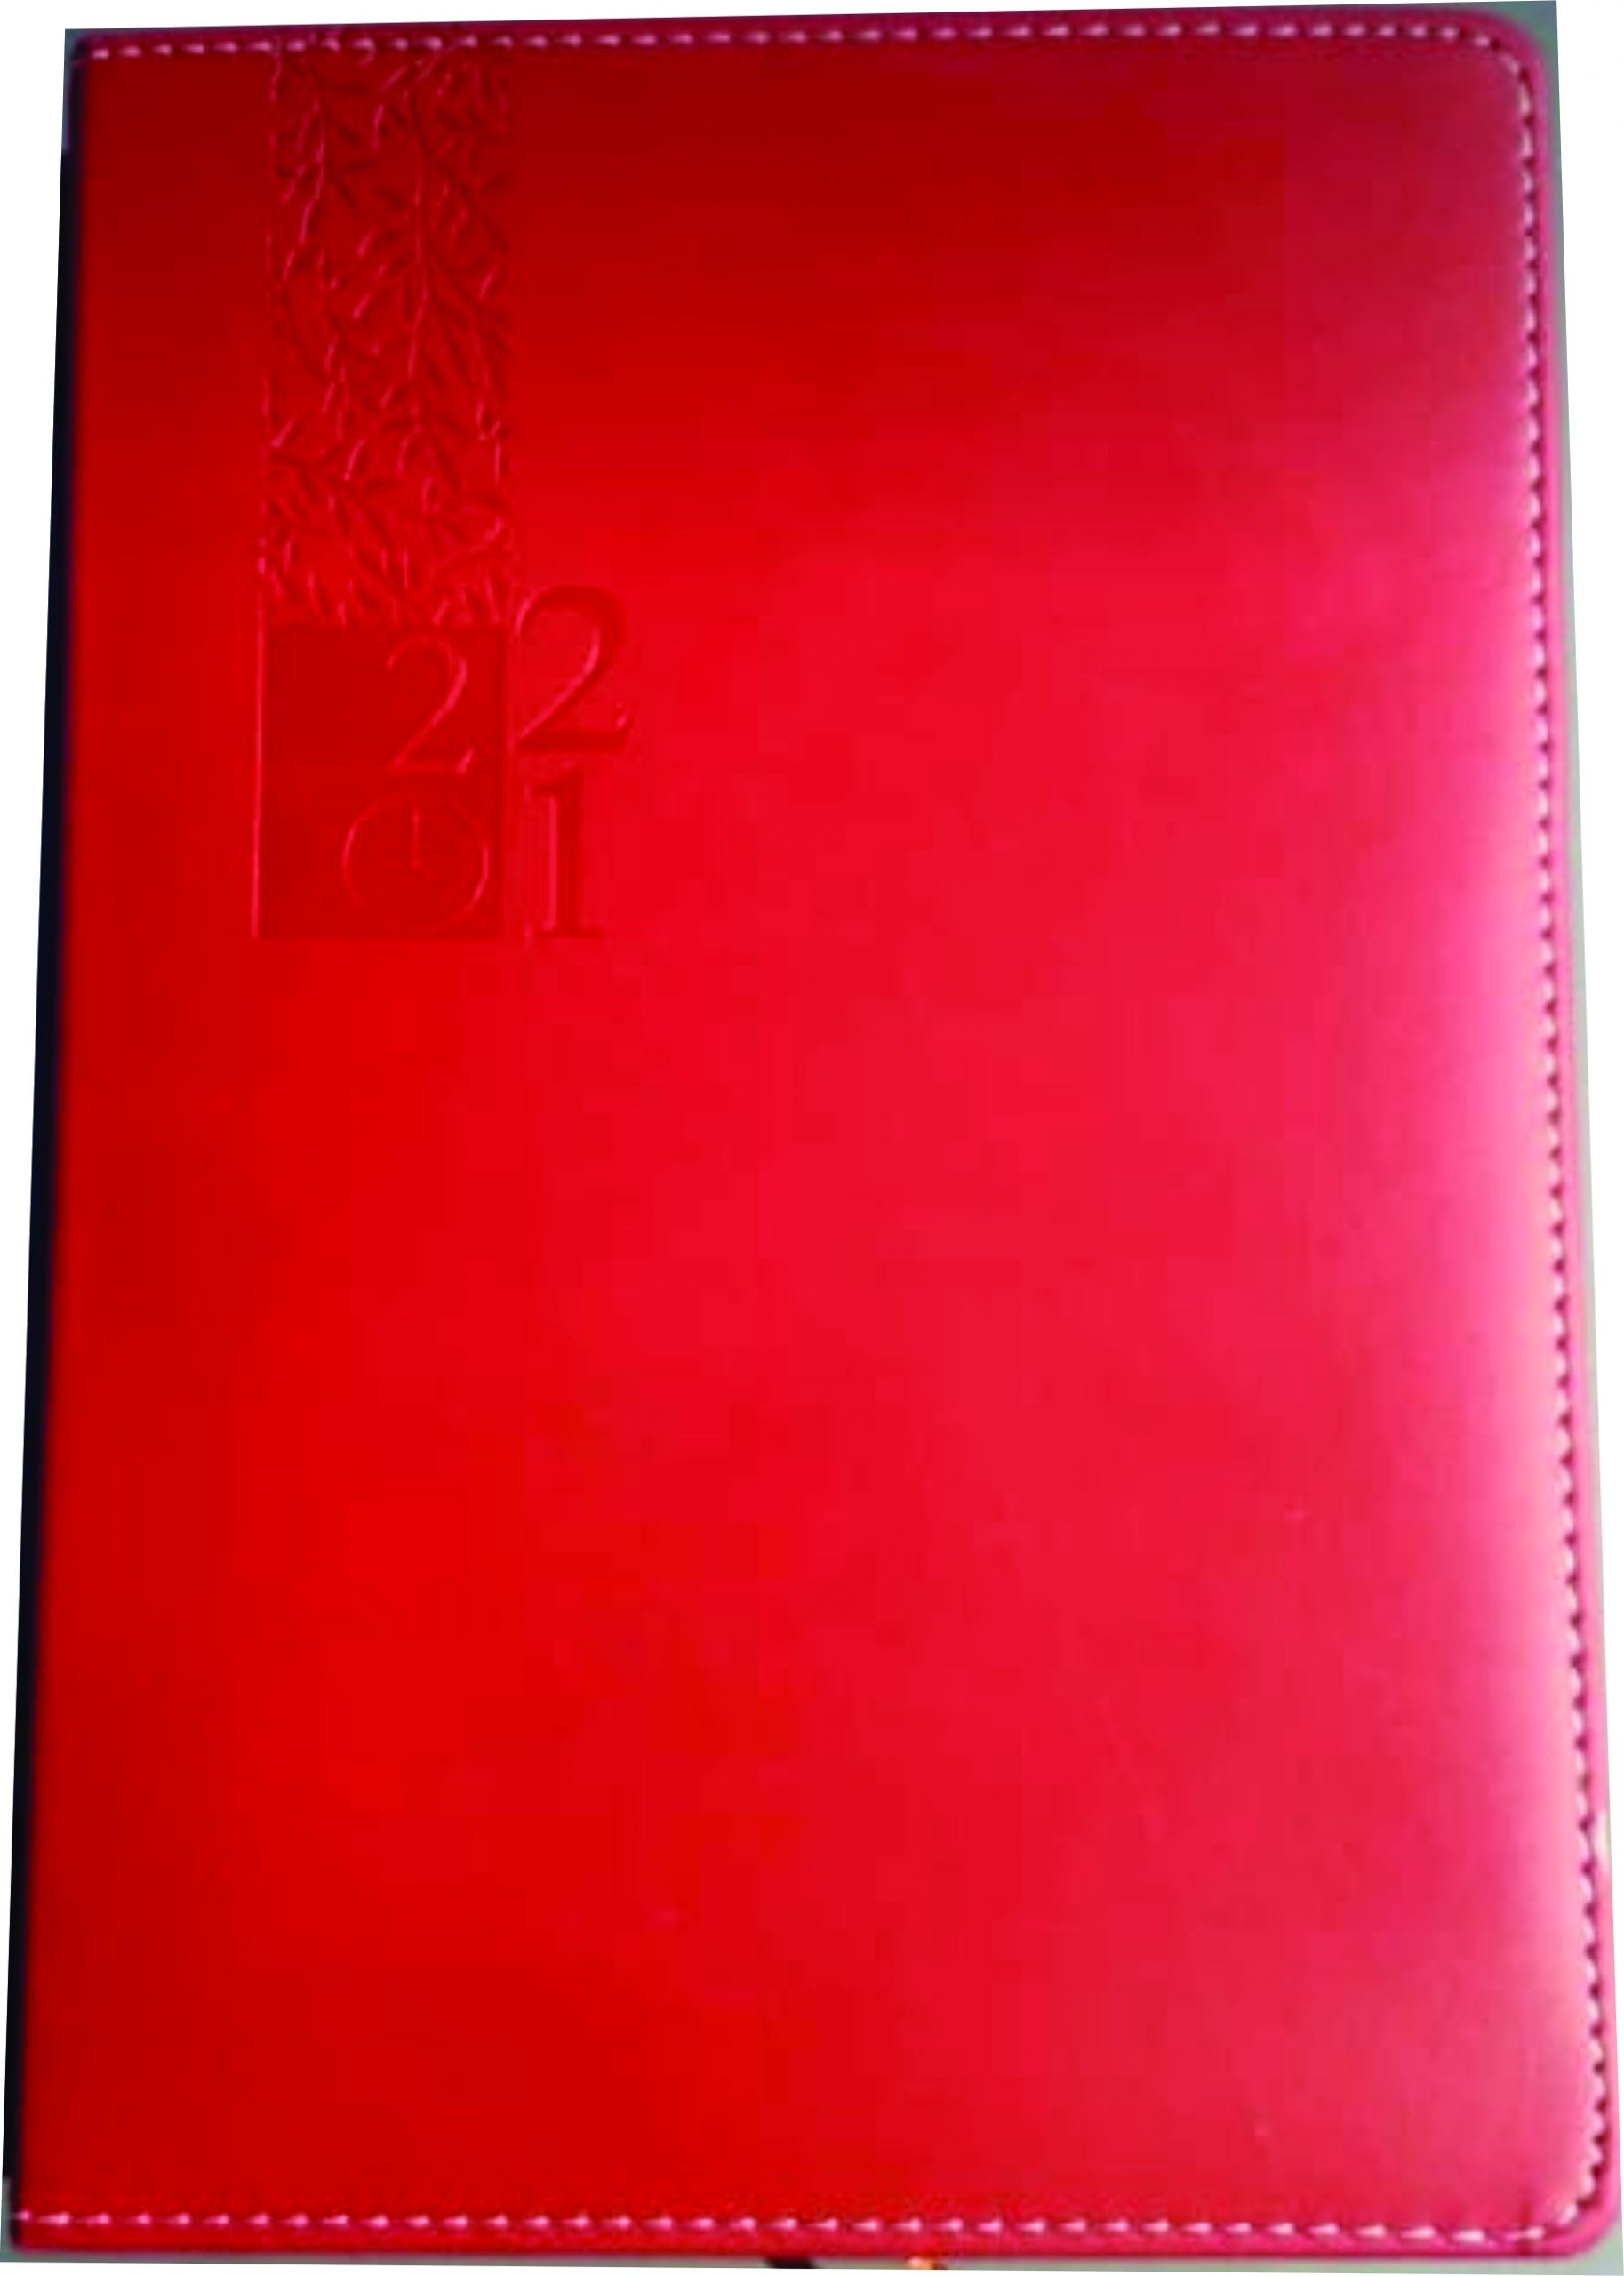 2019 personalised diaries Johannesburg South Africa- Printing jet